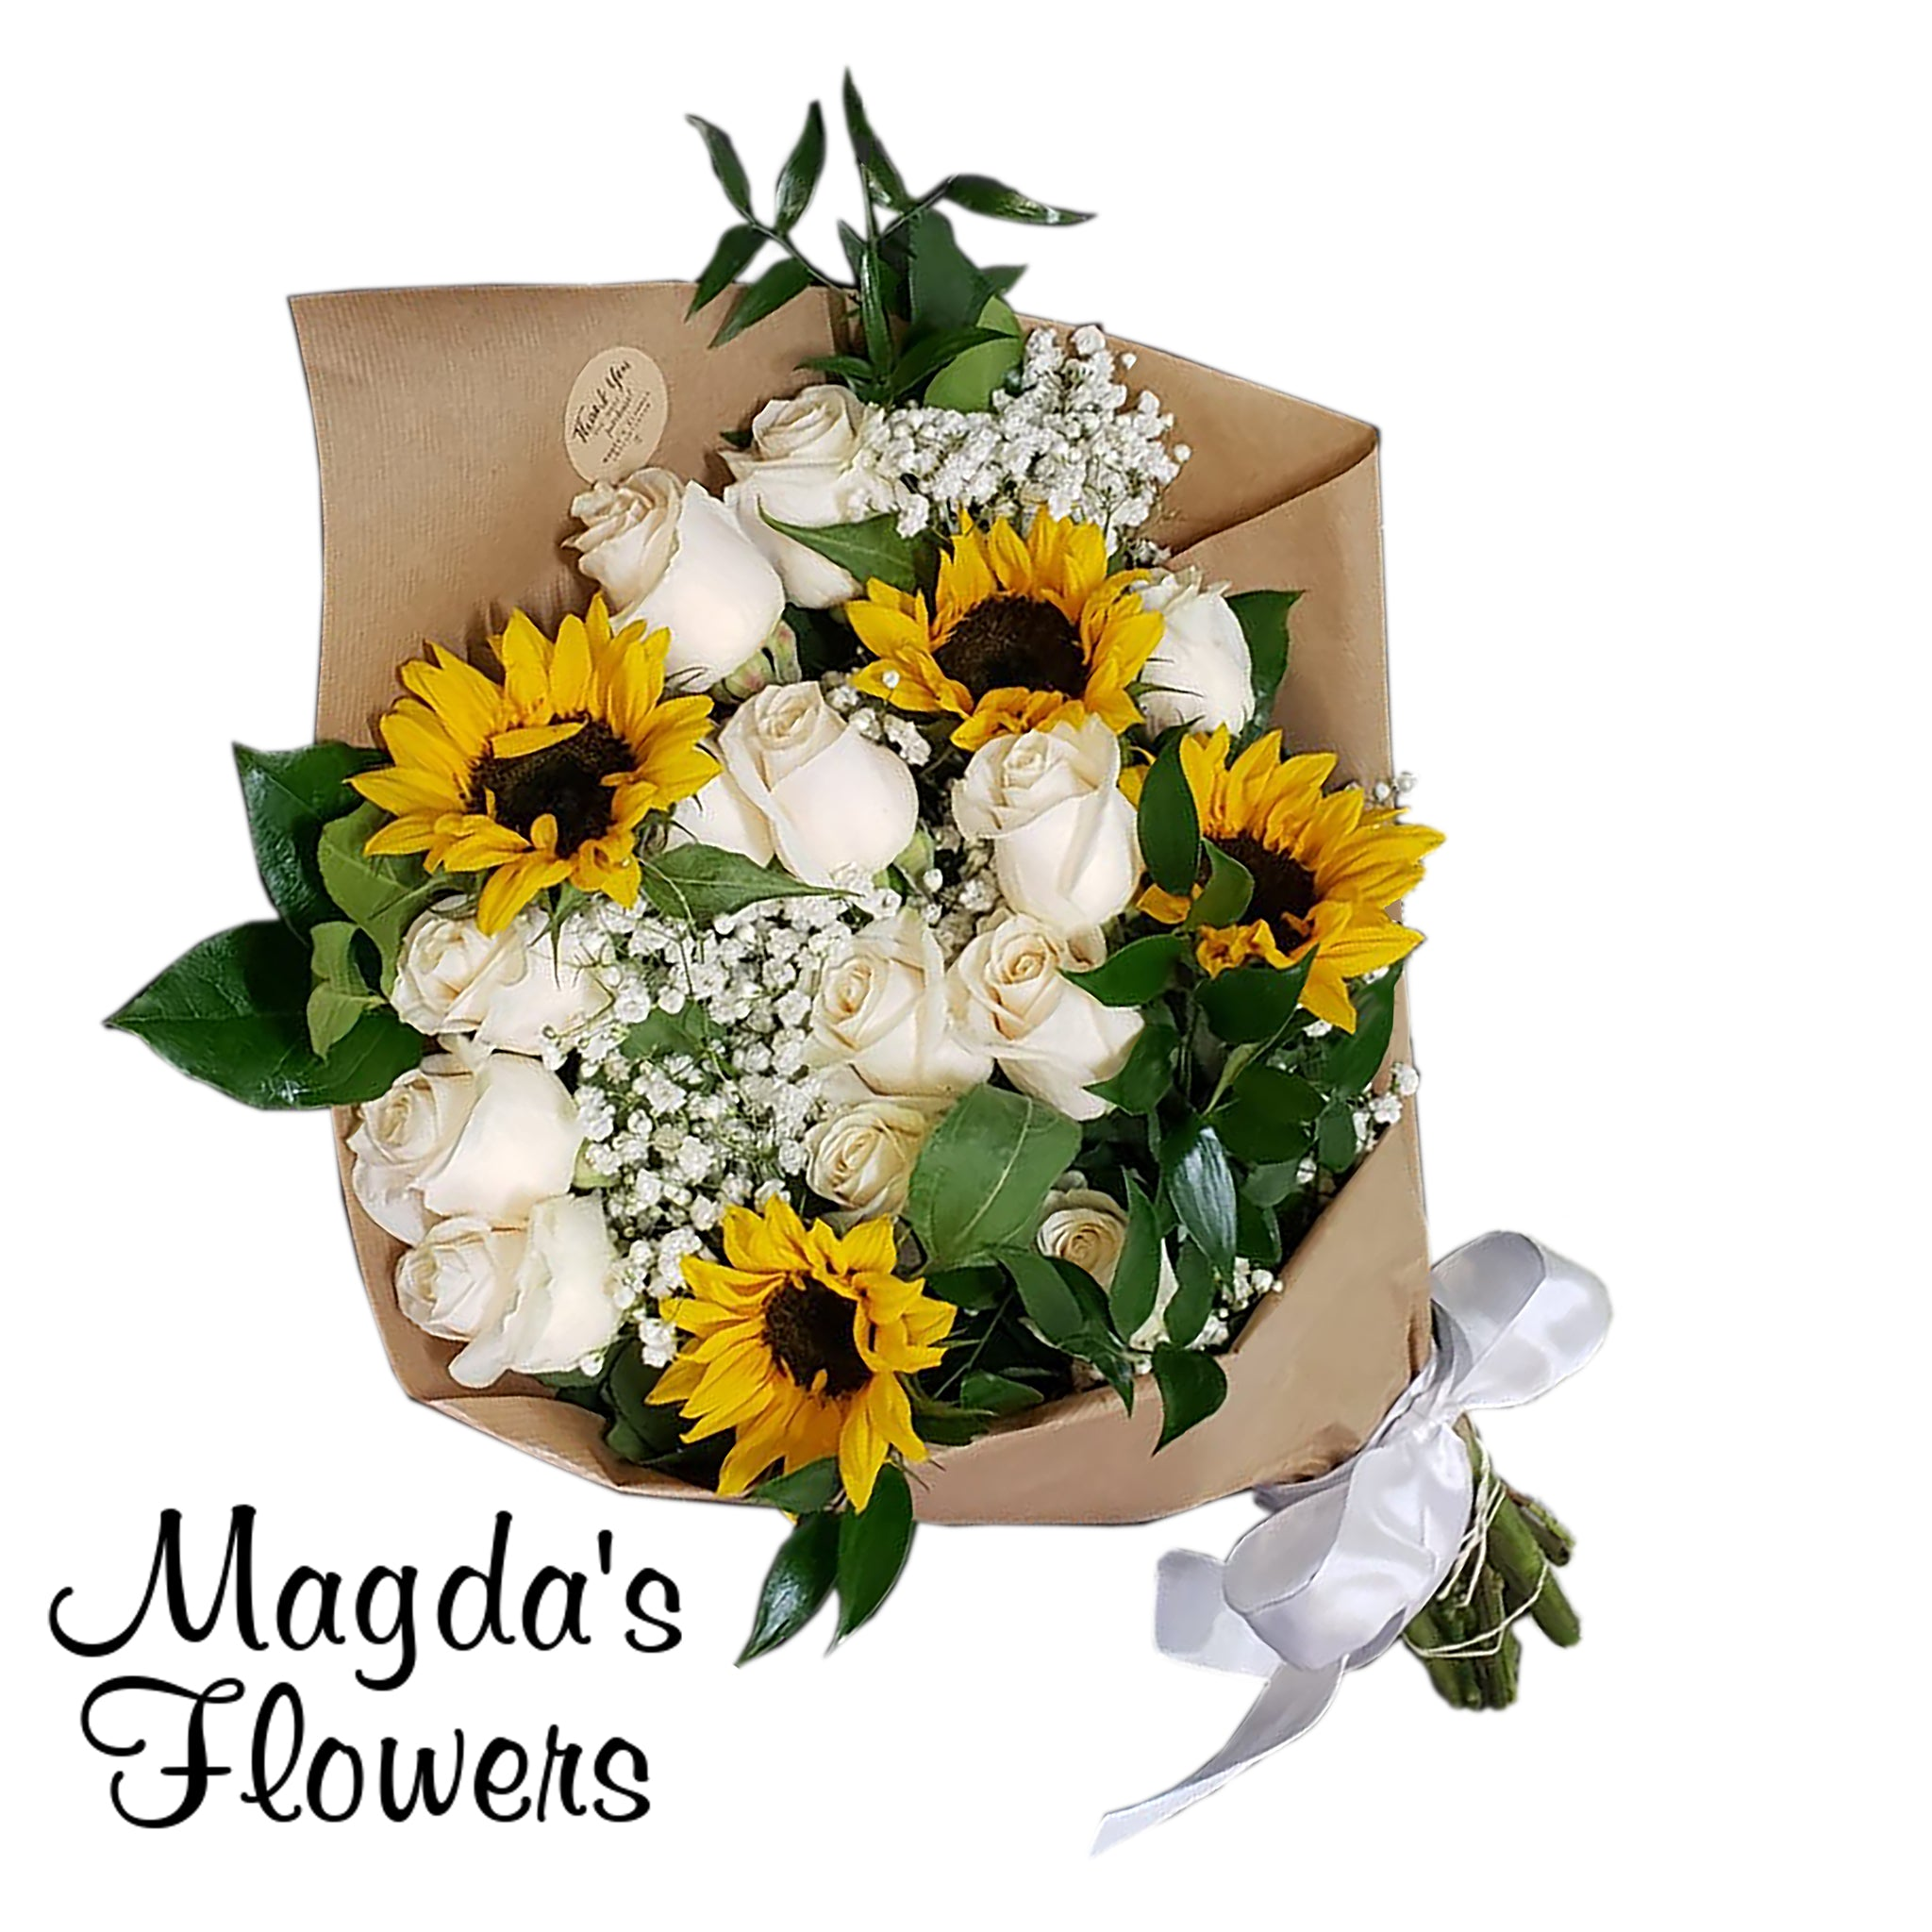 Sunflower and white roses in an elegegant floral bouquet - Magdas Flowers - Local florist in Salinas. Online Order for local delivery.